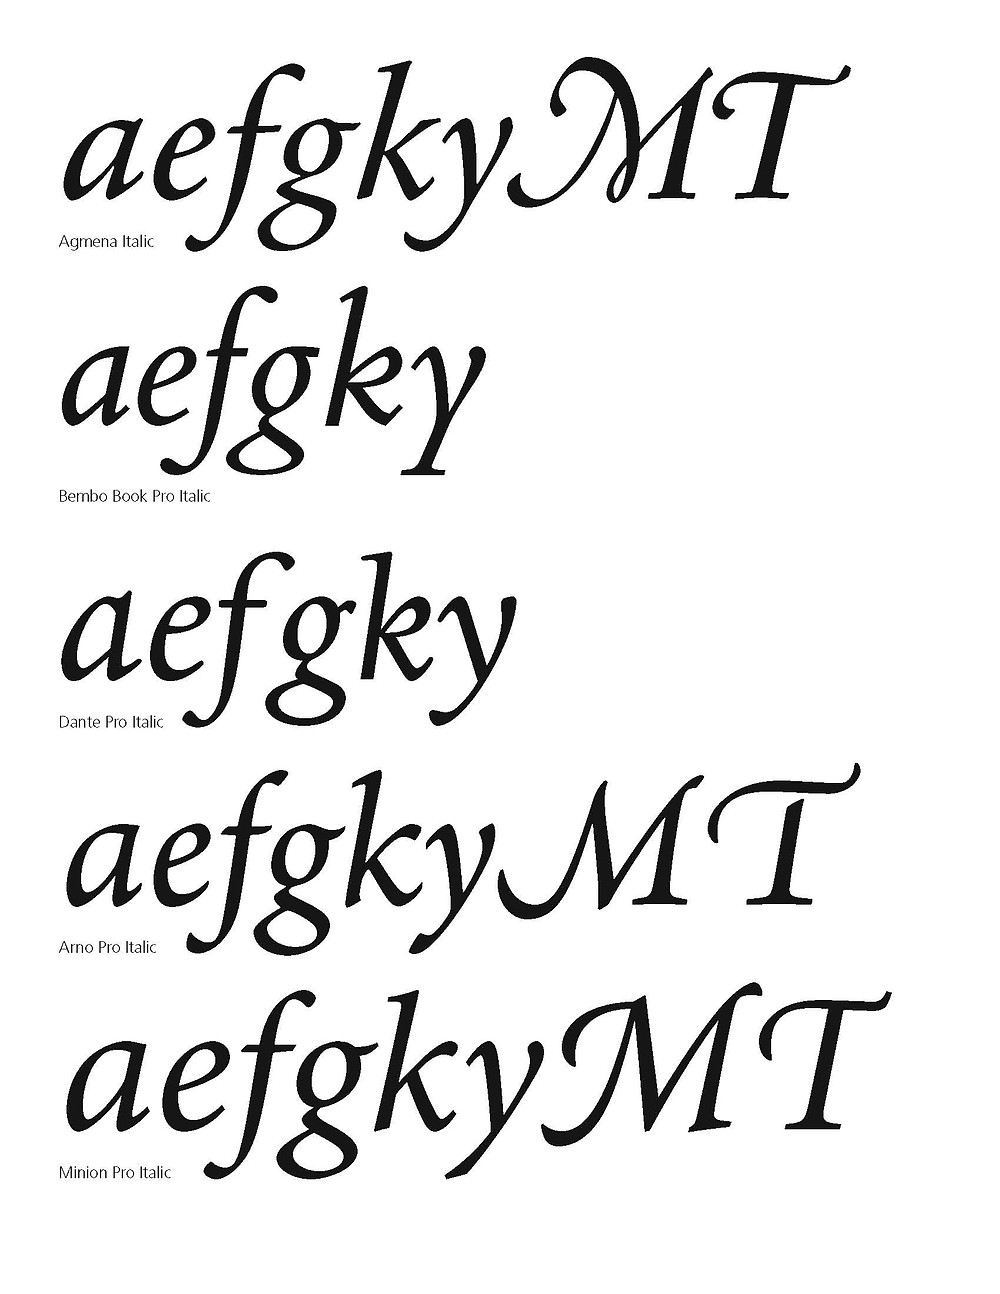 Agmena italic compared to Bembo, Dante, Arno and Minion.